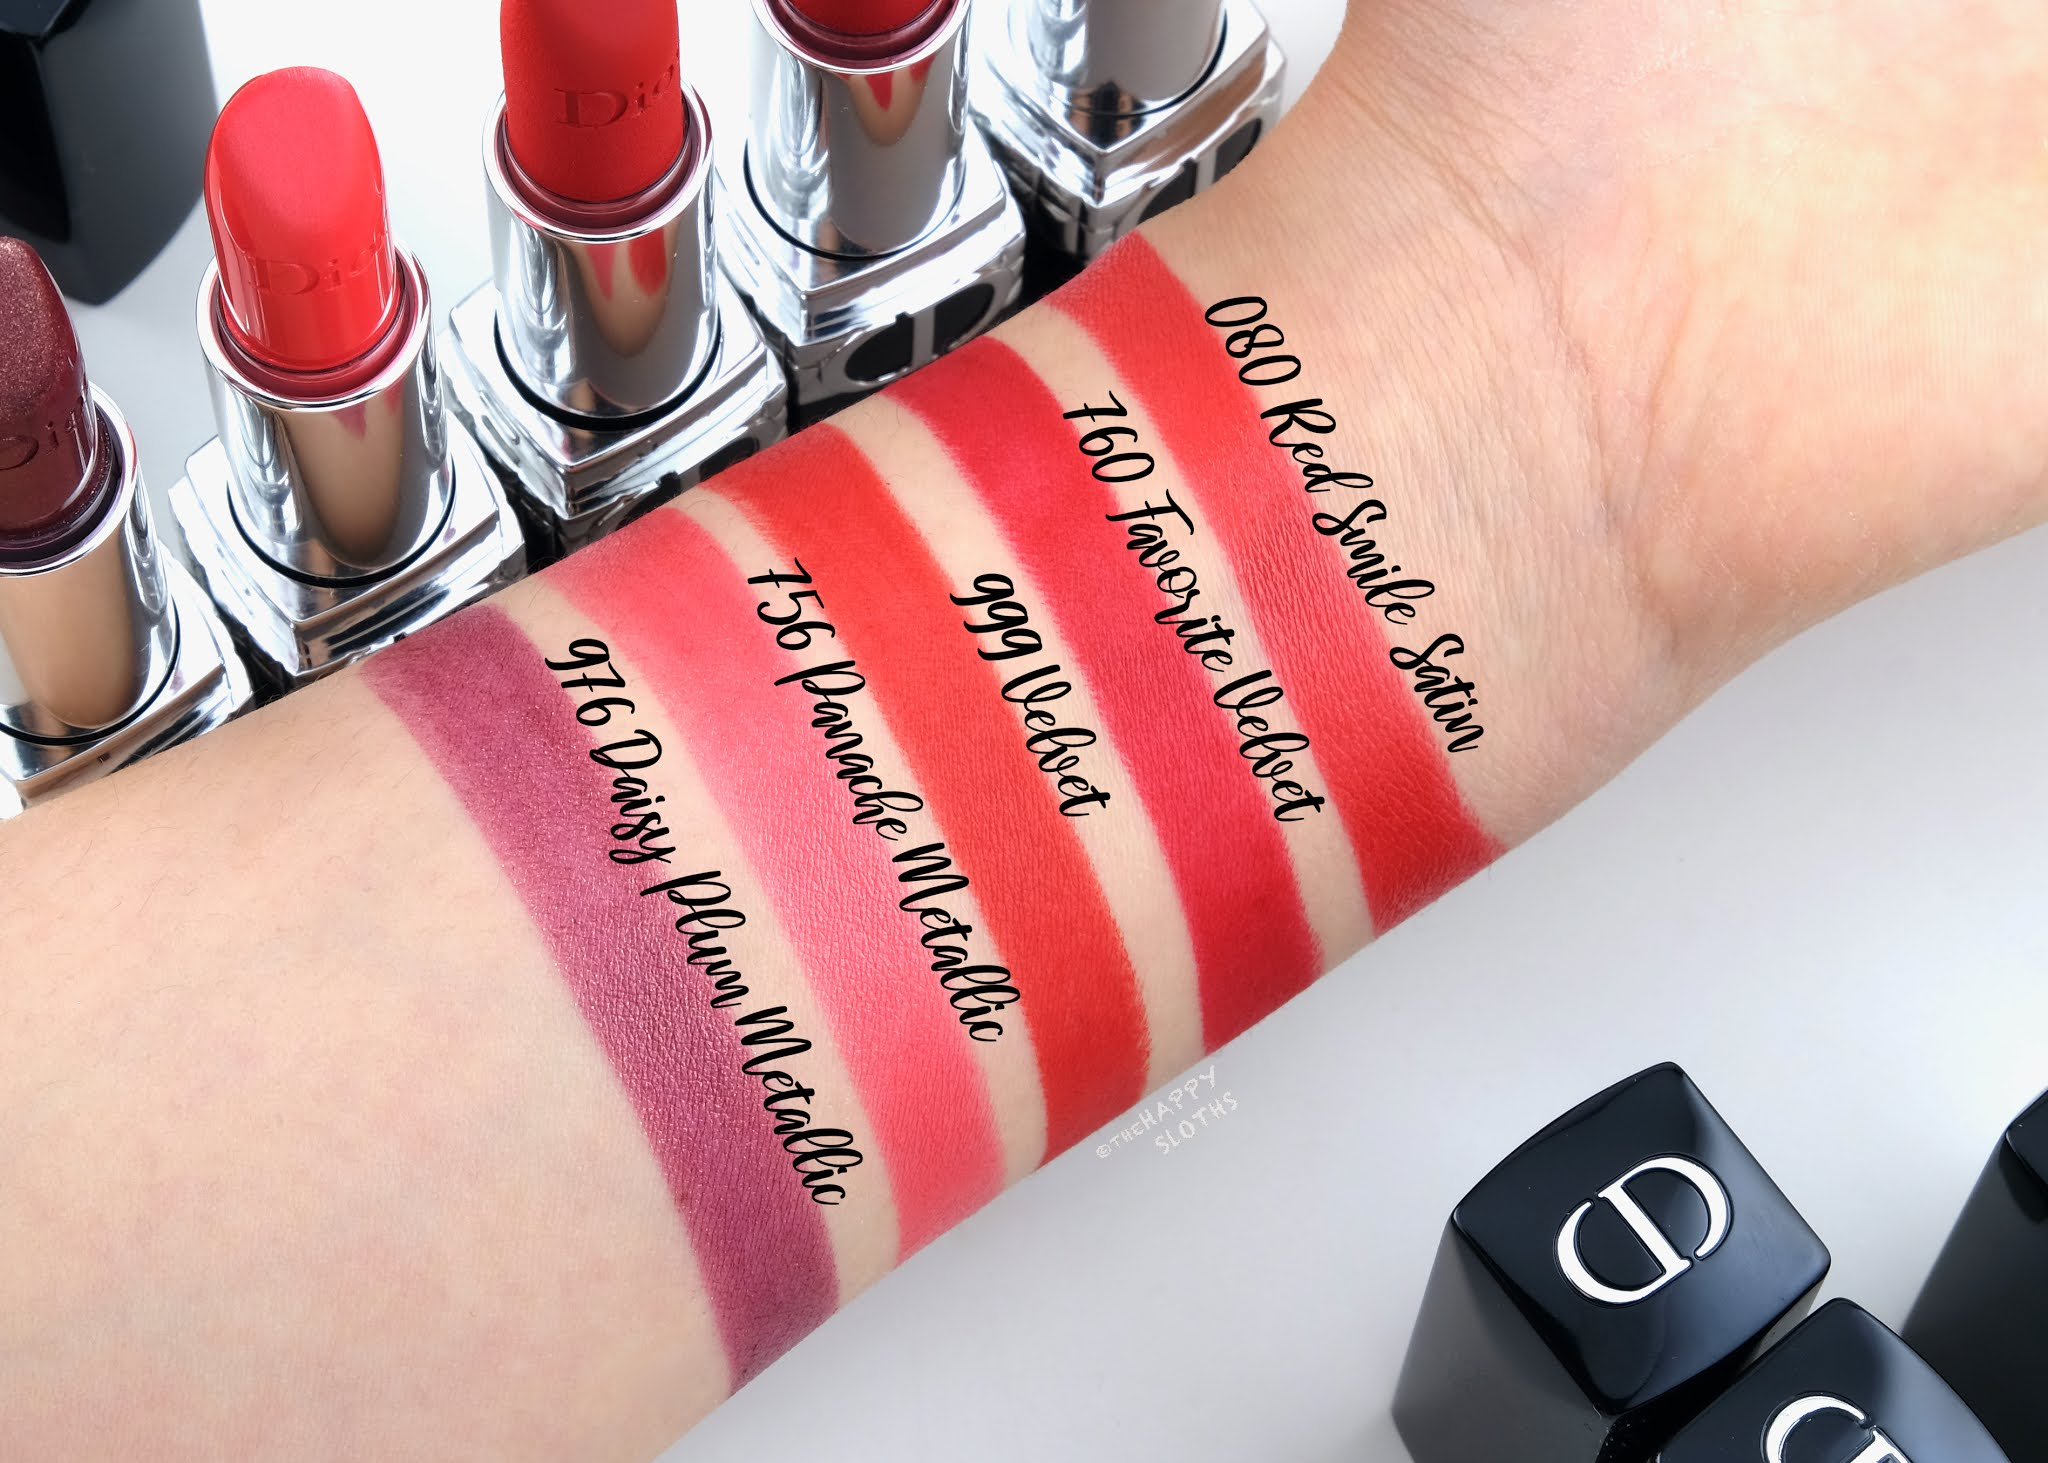 Dior | *NEW* Rouge Dior Refillable Lipstick: Review and Swatches